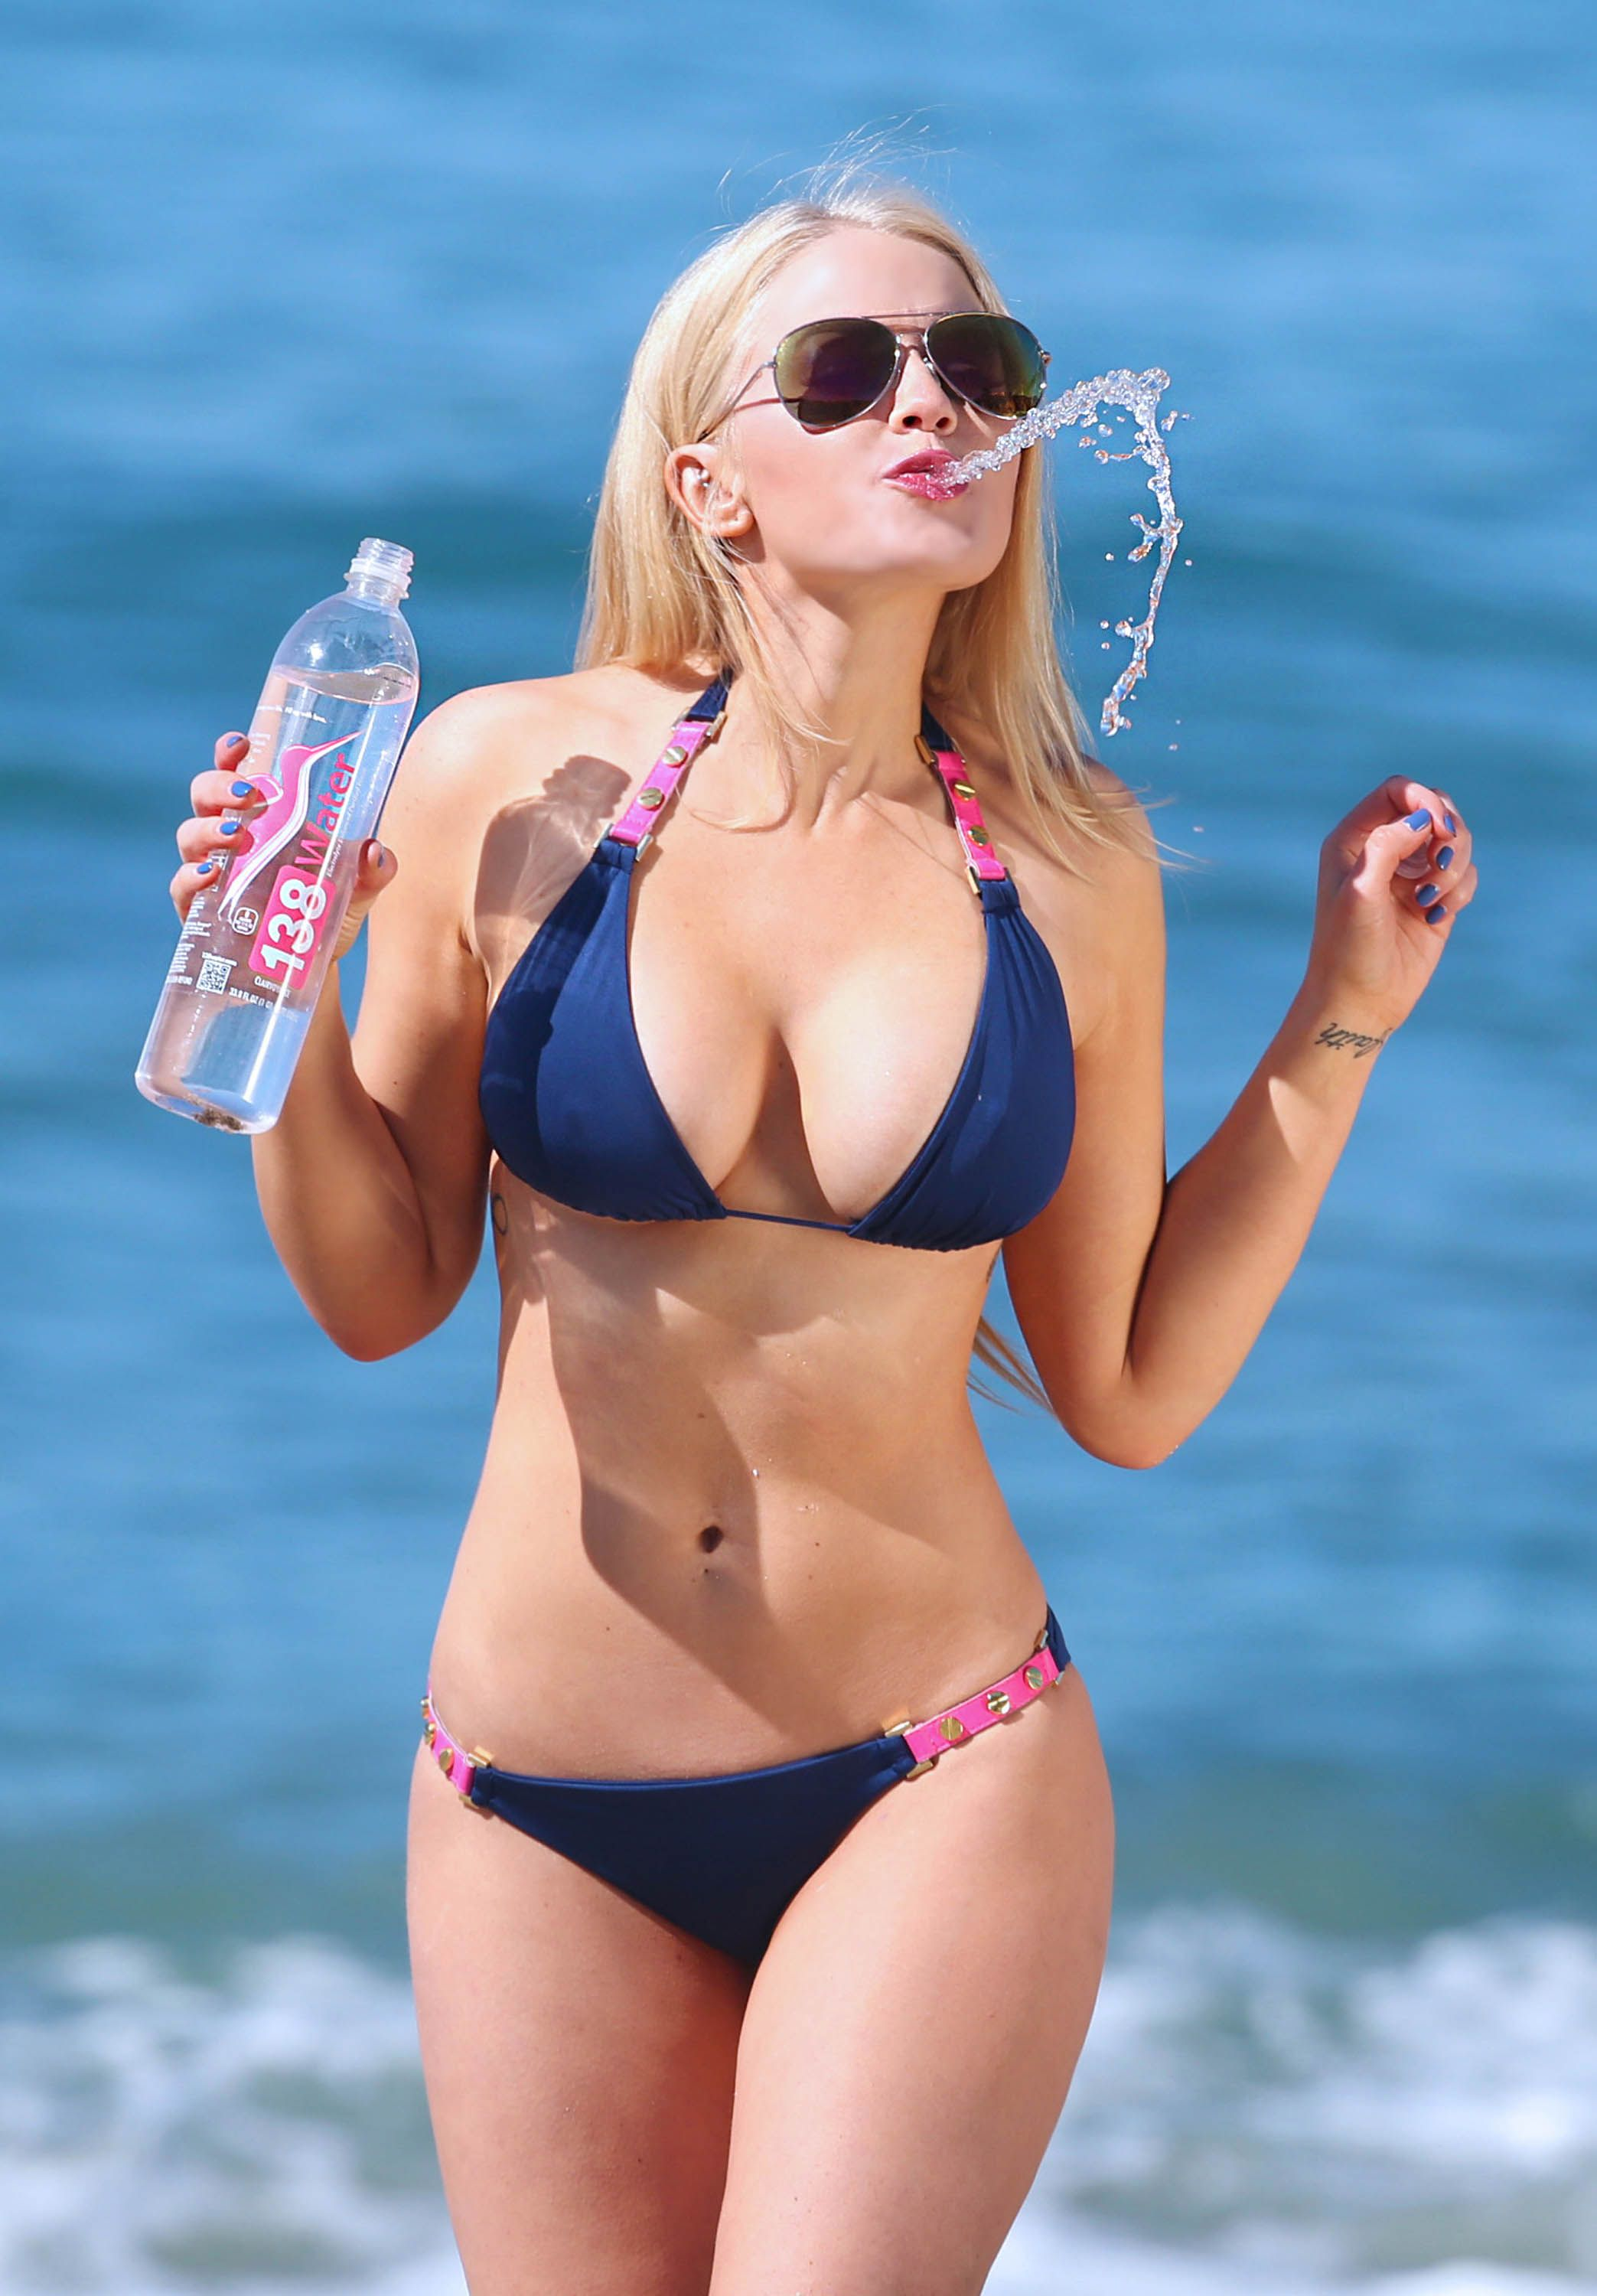 Anna Sophia Berglund Now Dats Perfect Bikini Body 138